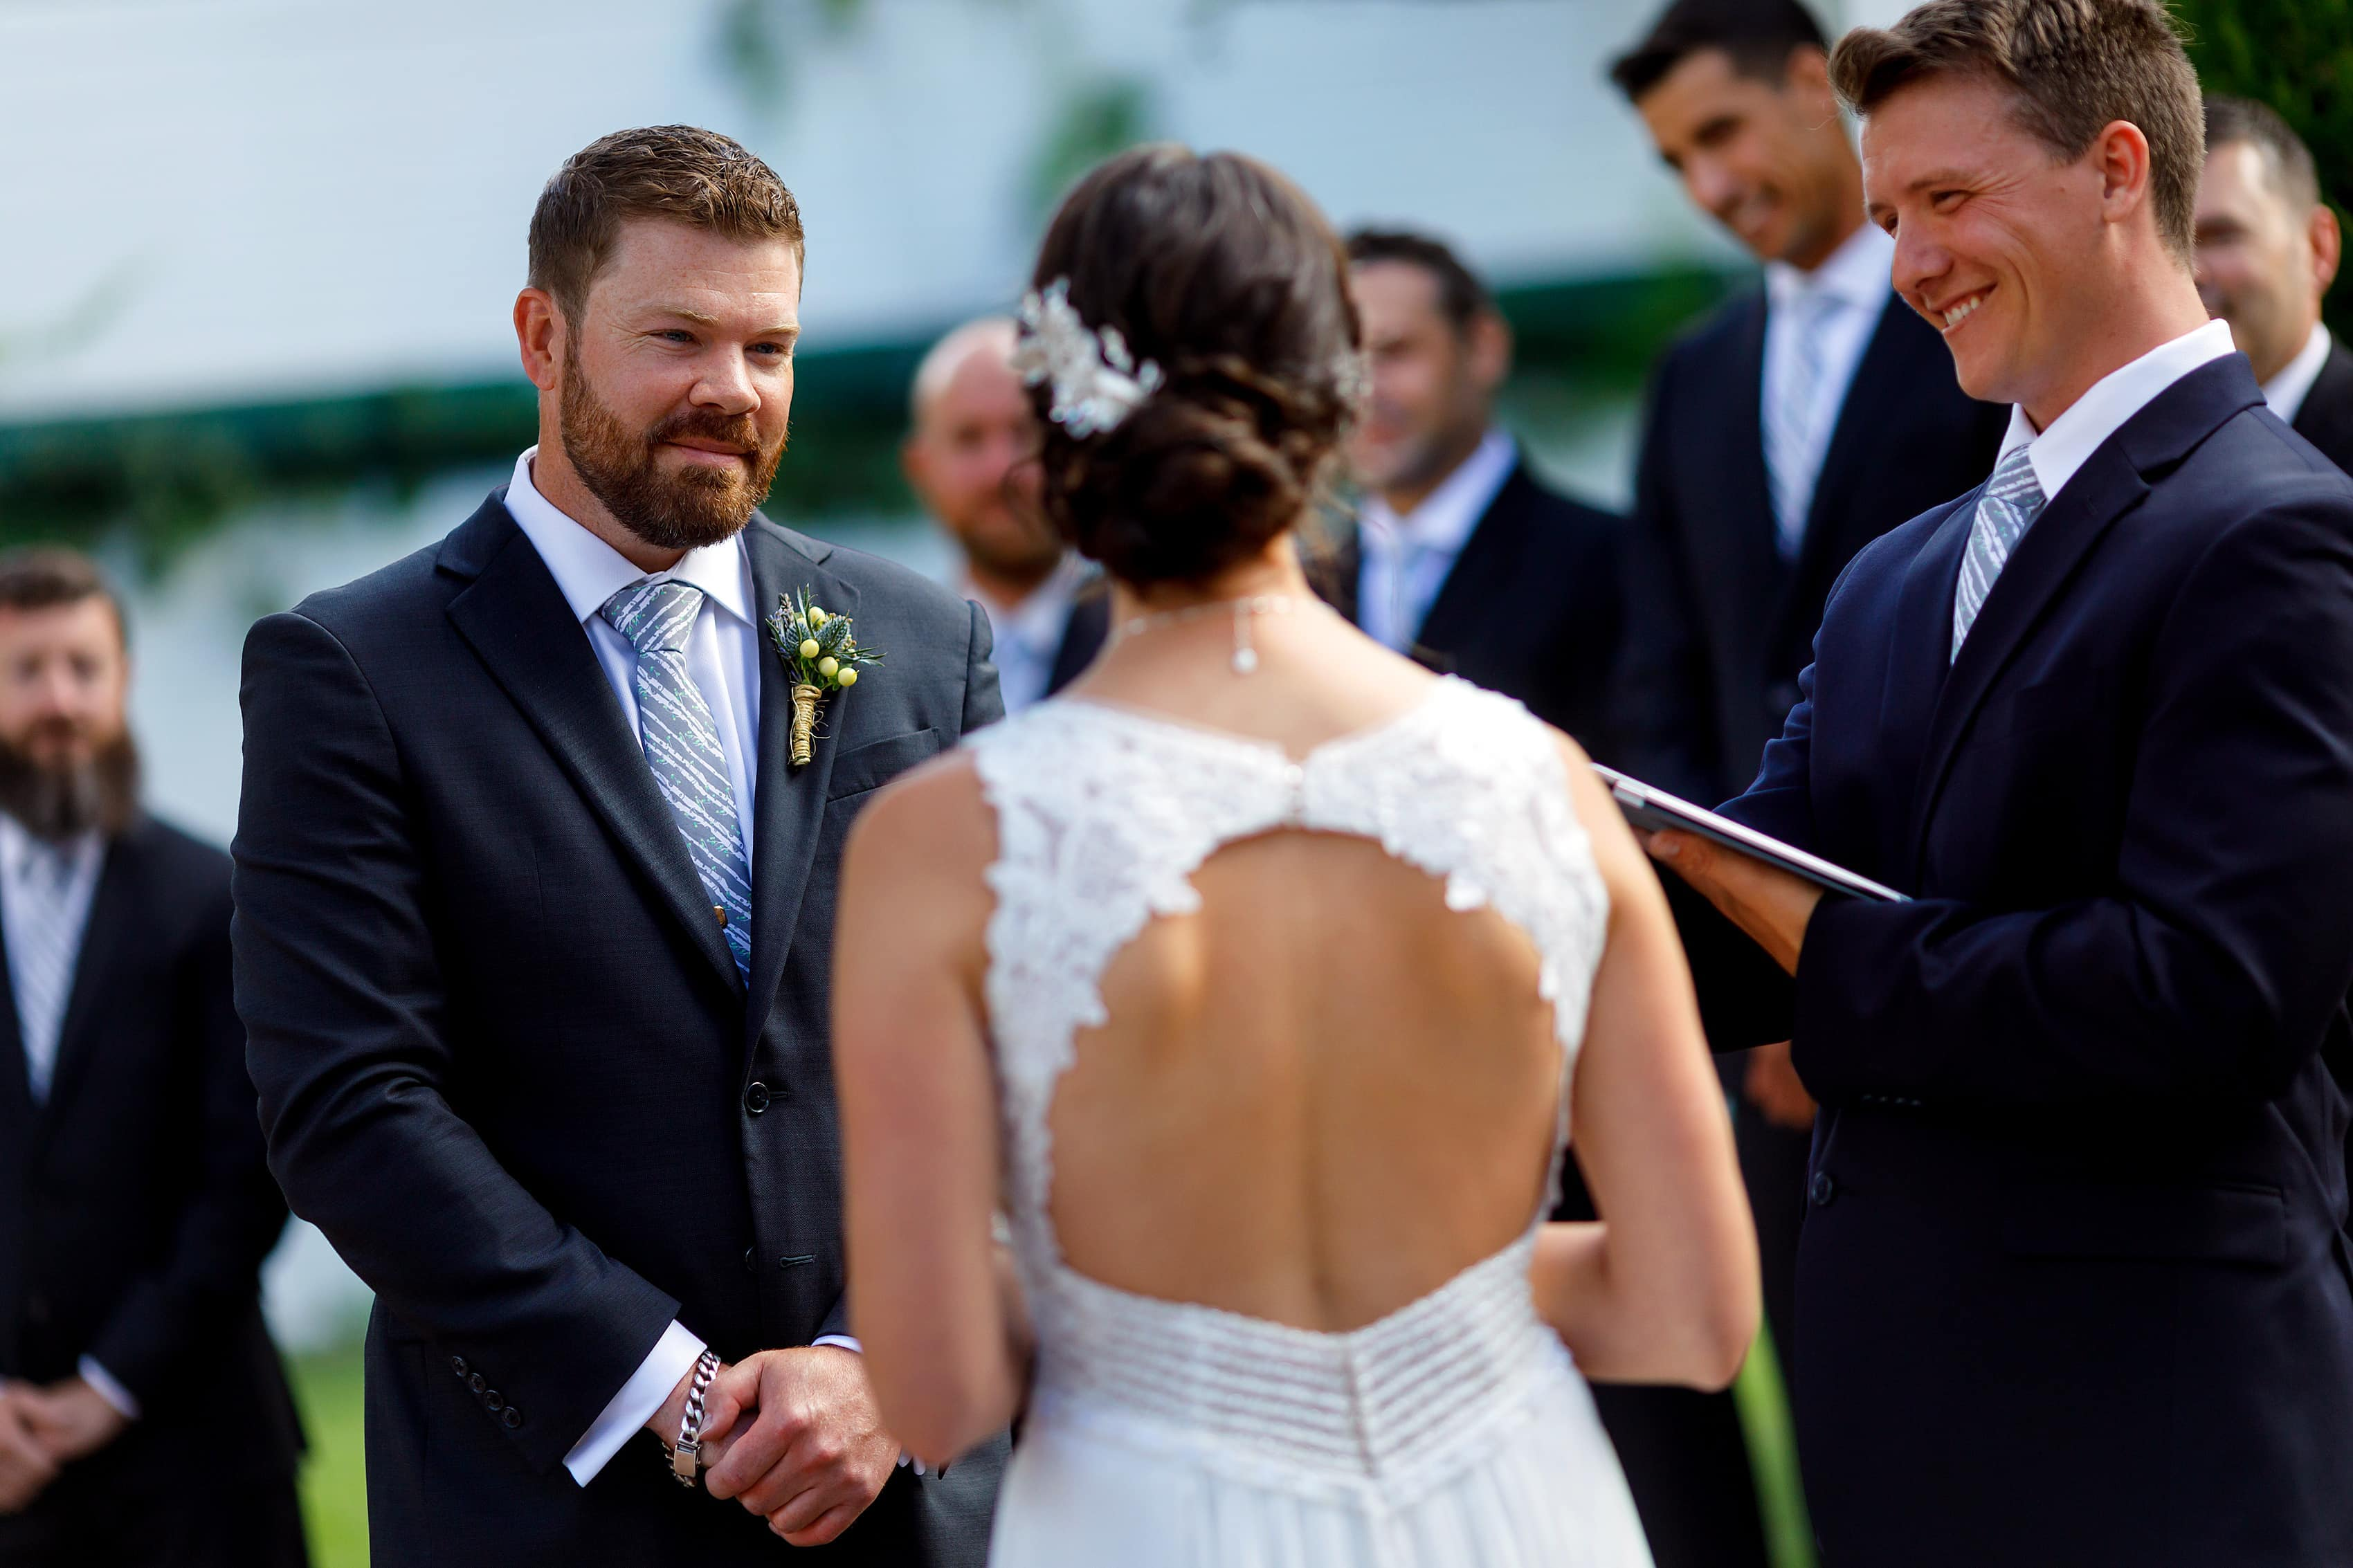 groom smiling during outdoor wedding ceremony at Lionsgate Event Center